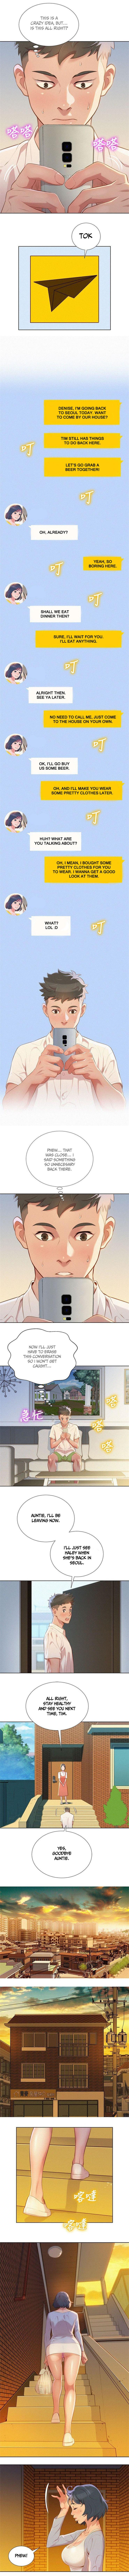 What do you Take me For? Ch.40/? 329